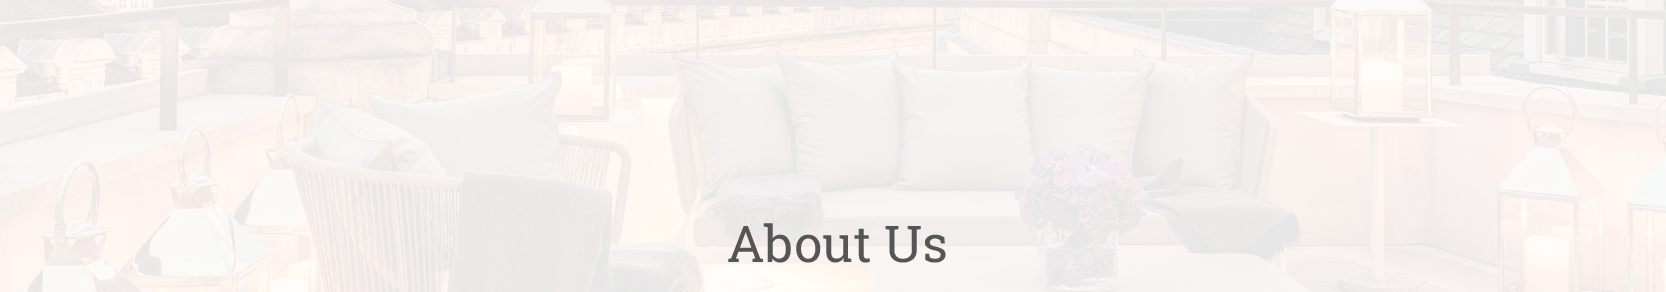 About Us Image